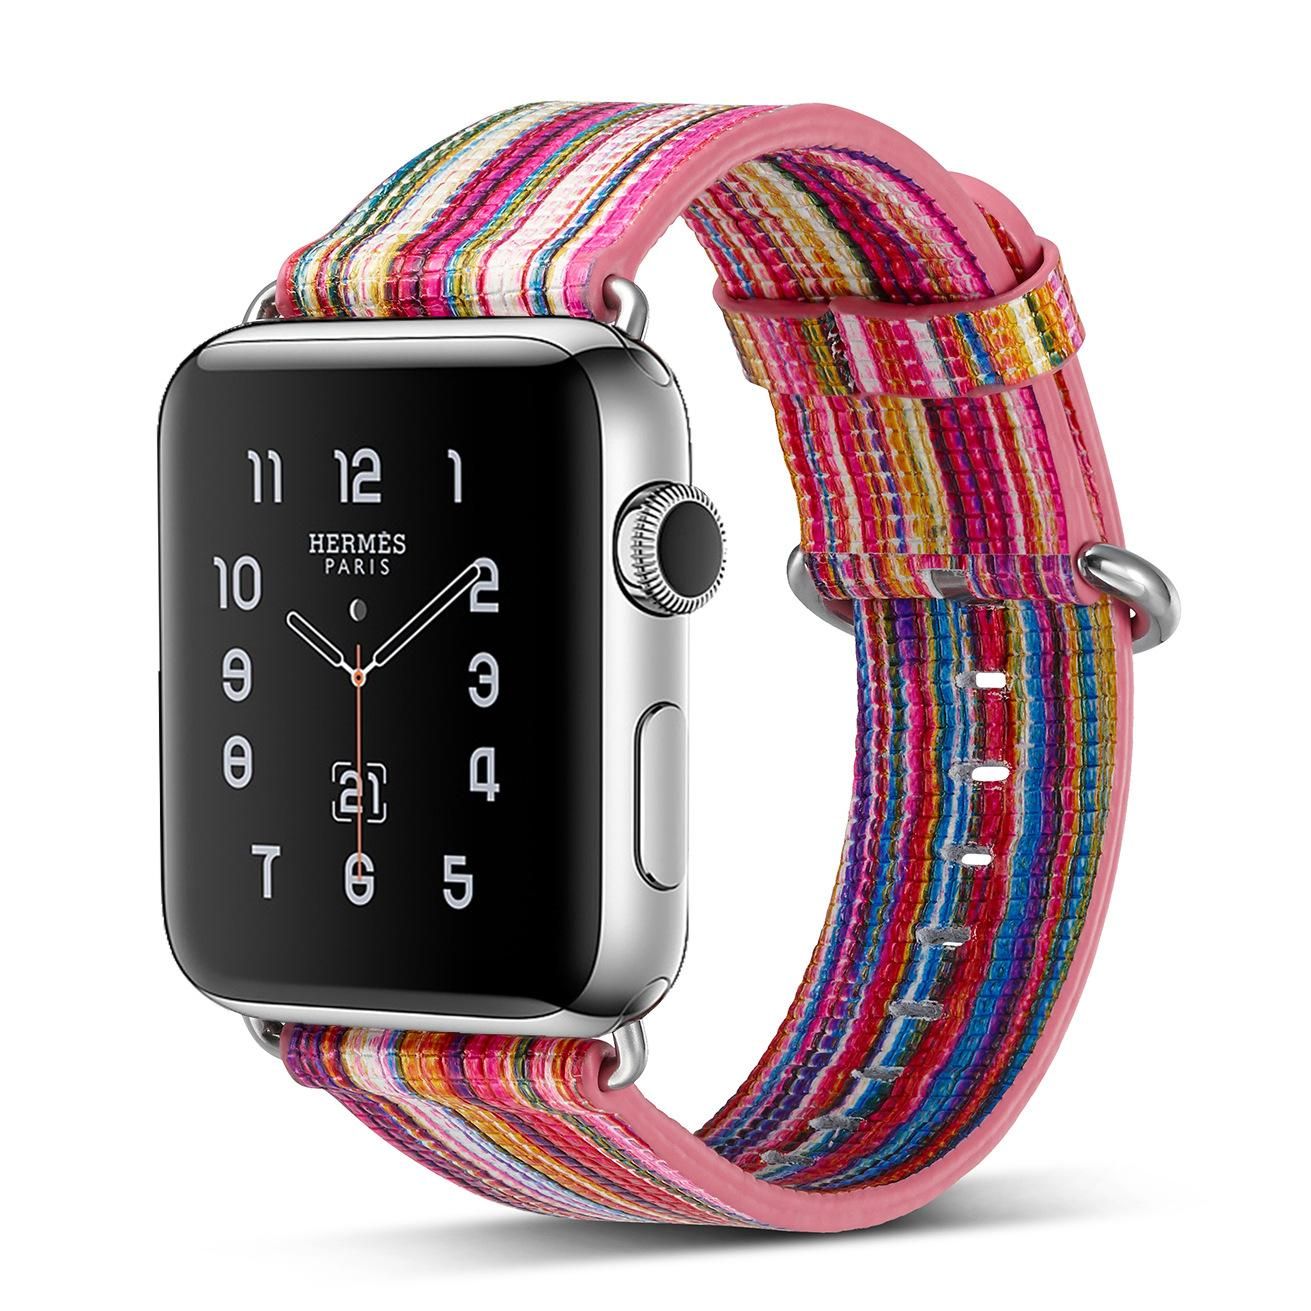 New Colorful Multicolor Band for Apple Watch band 42mm 38mm Bracelet belt  Leather for Iwatch strap Genuine leather Wristbands 8b7726f42c0